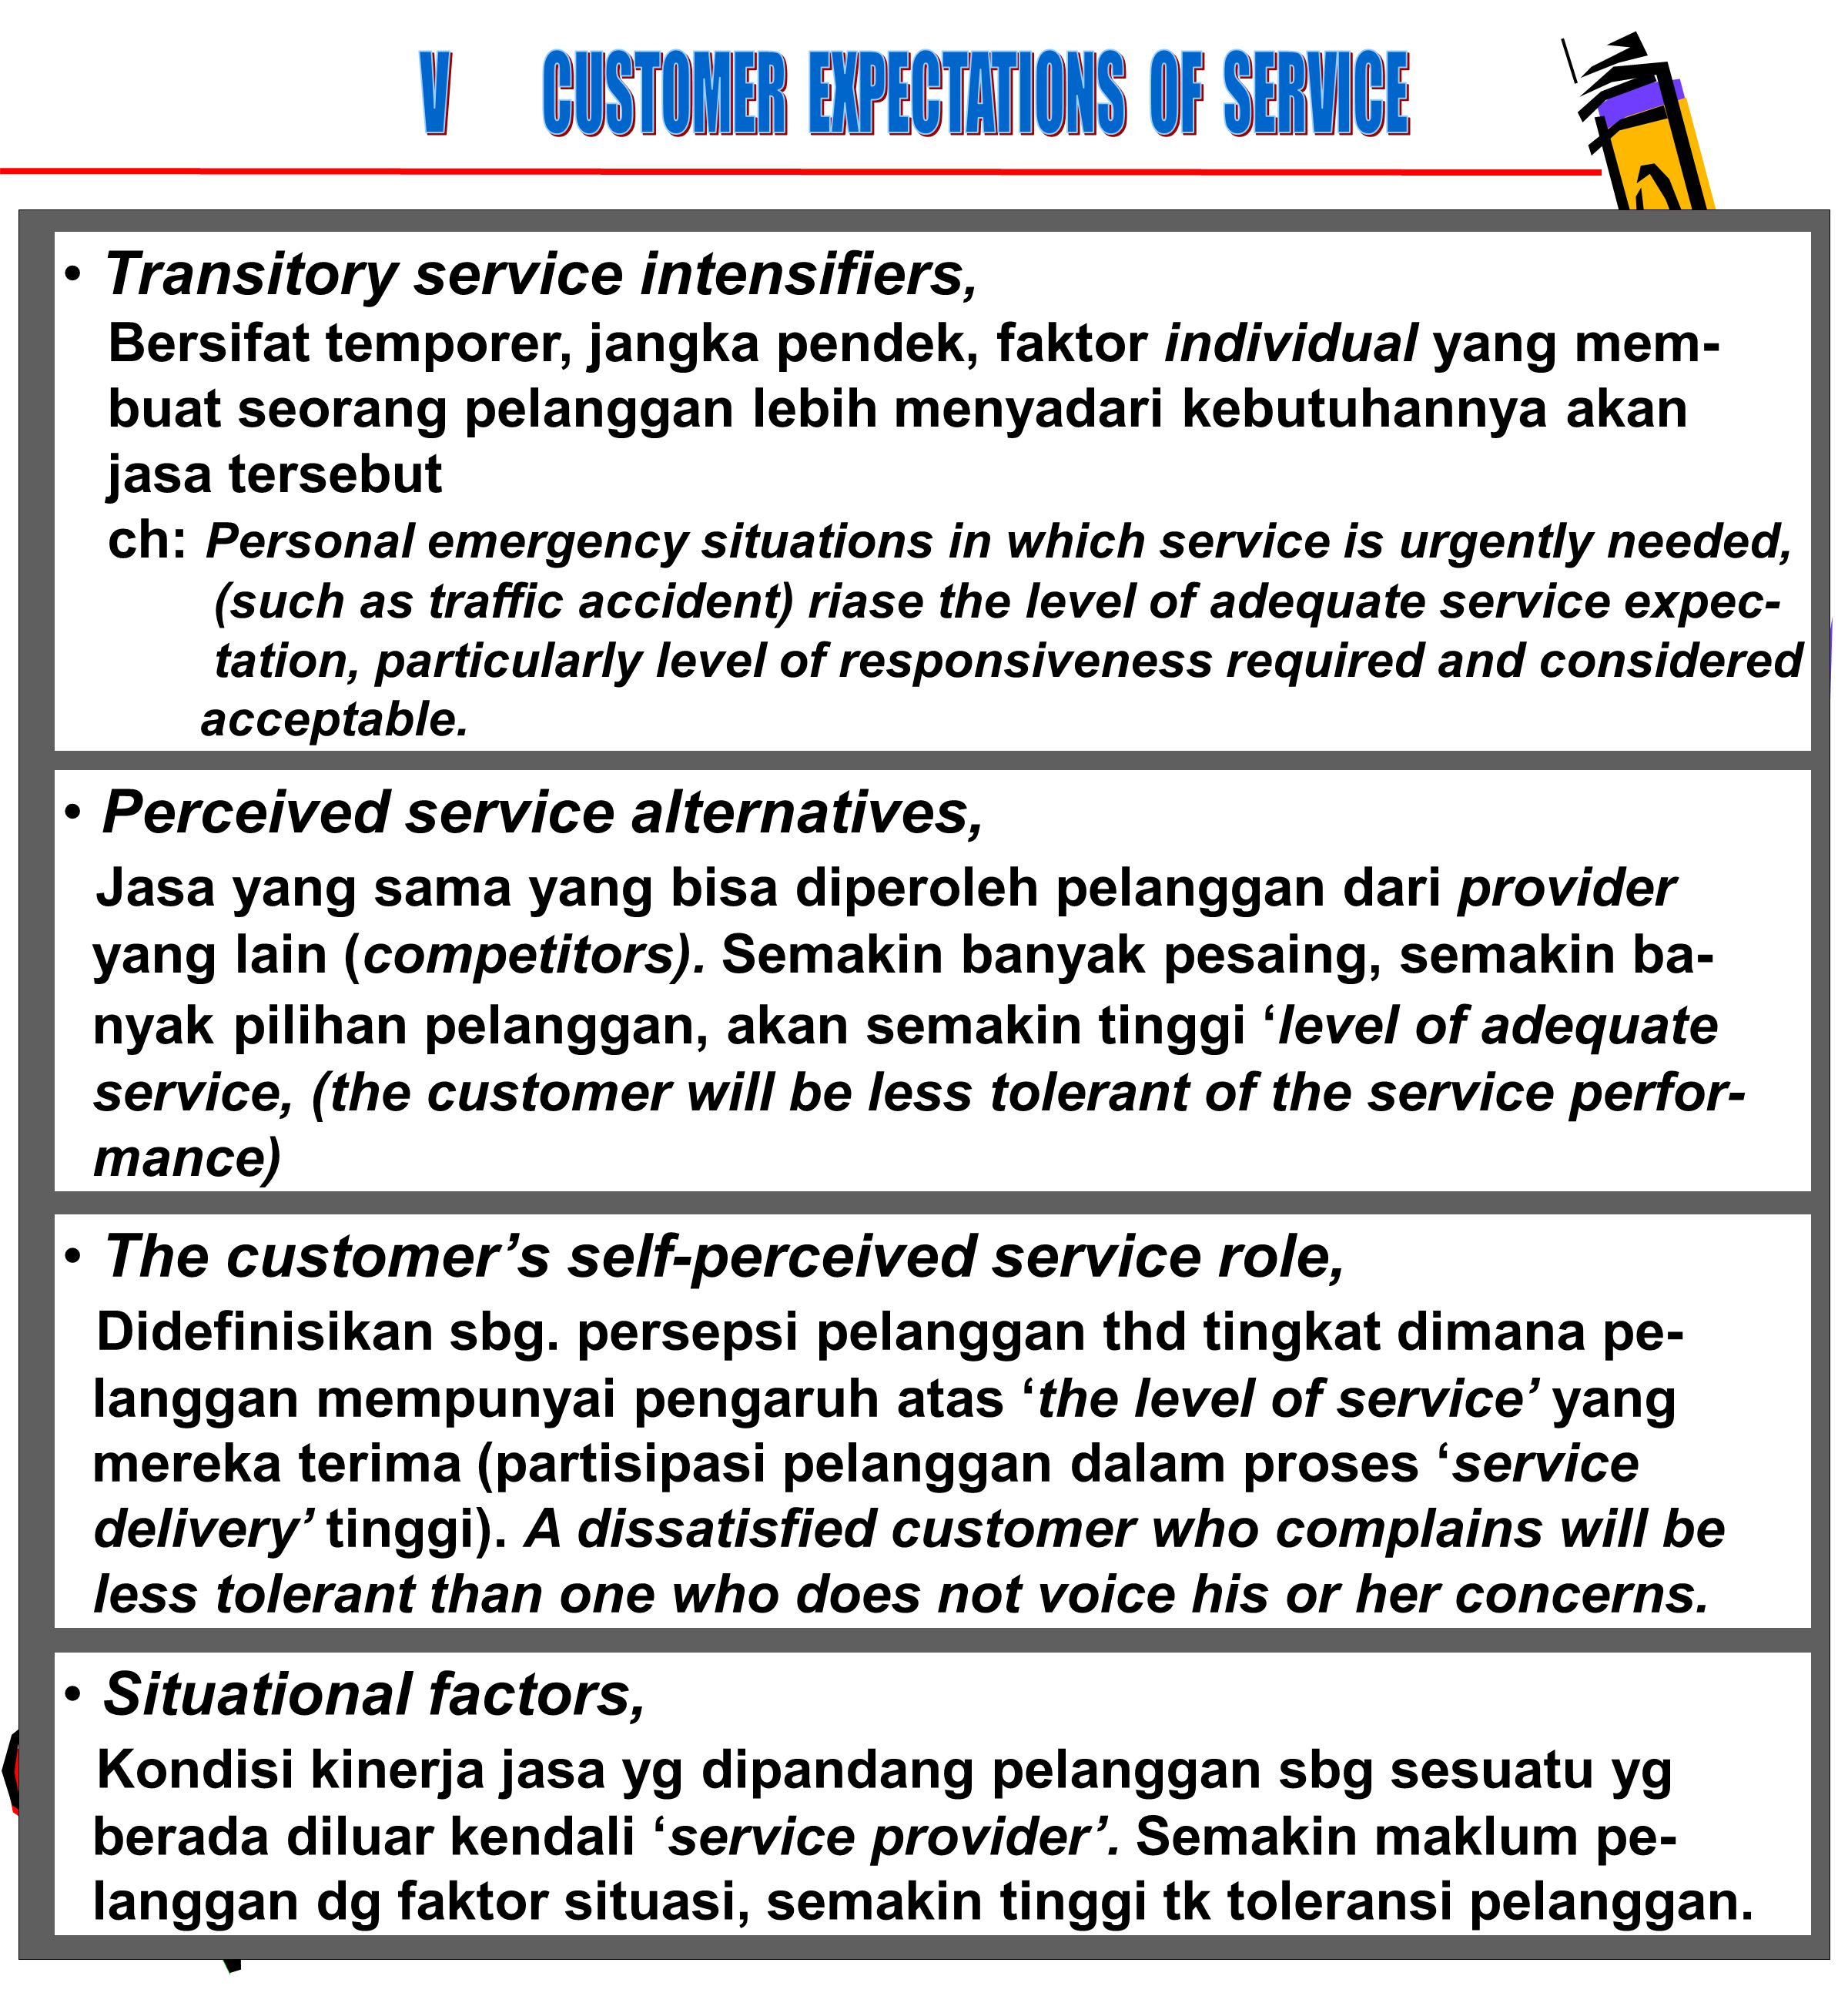 63 Transitory service intensifiers, Bersifat temporer, jangka pendek, faktor individual yang mem- buat seorang pelanggan lebih menyadari kebutuhannya akan jasa tersebut ch: Personal emergency situations in which service is urgently needed, (such as traffic accident) riase the level of adequate service expec- tation, particularly level of responsiveness required and considered acceptable.